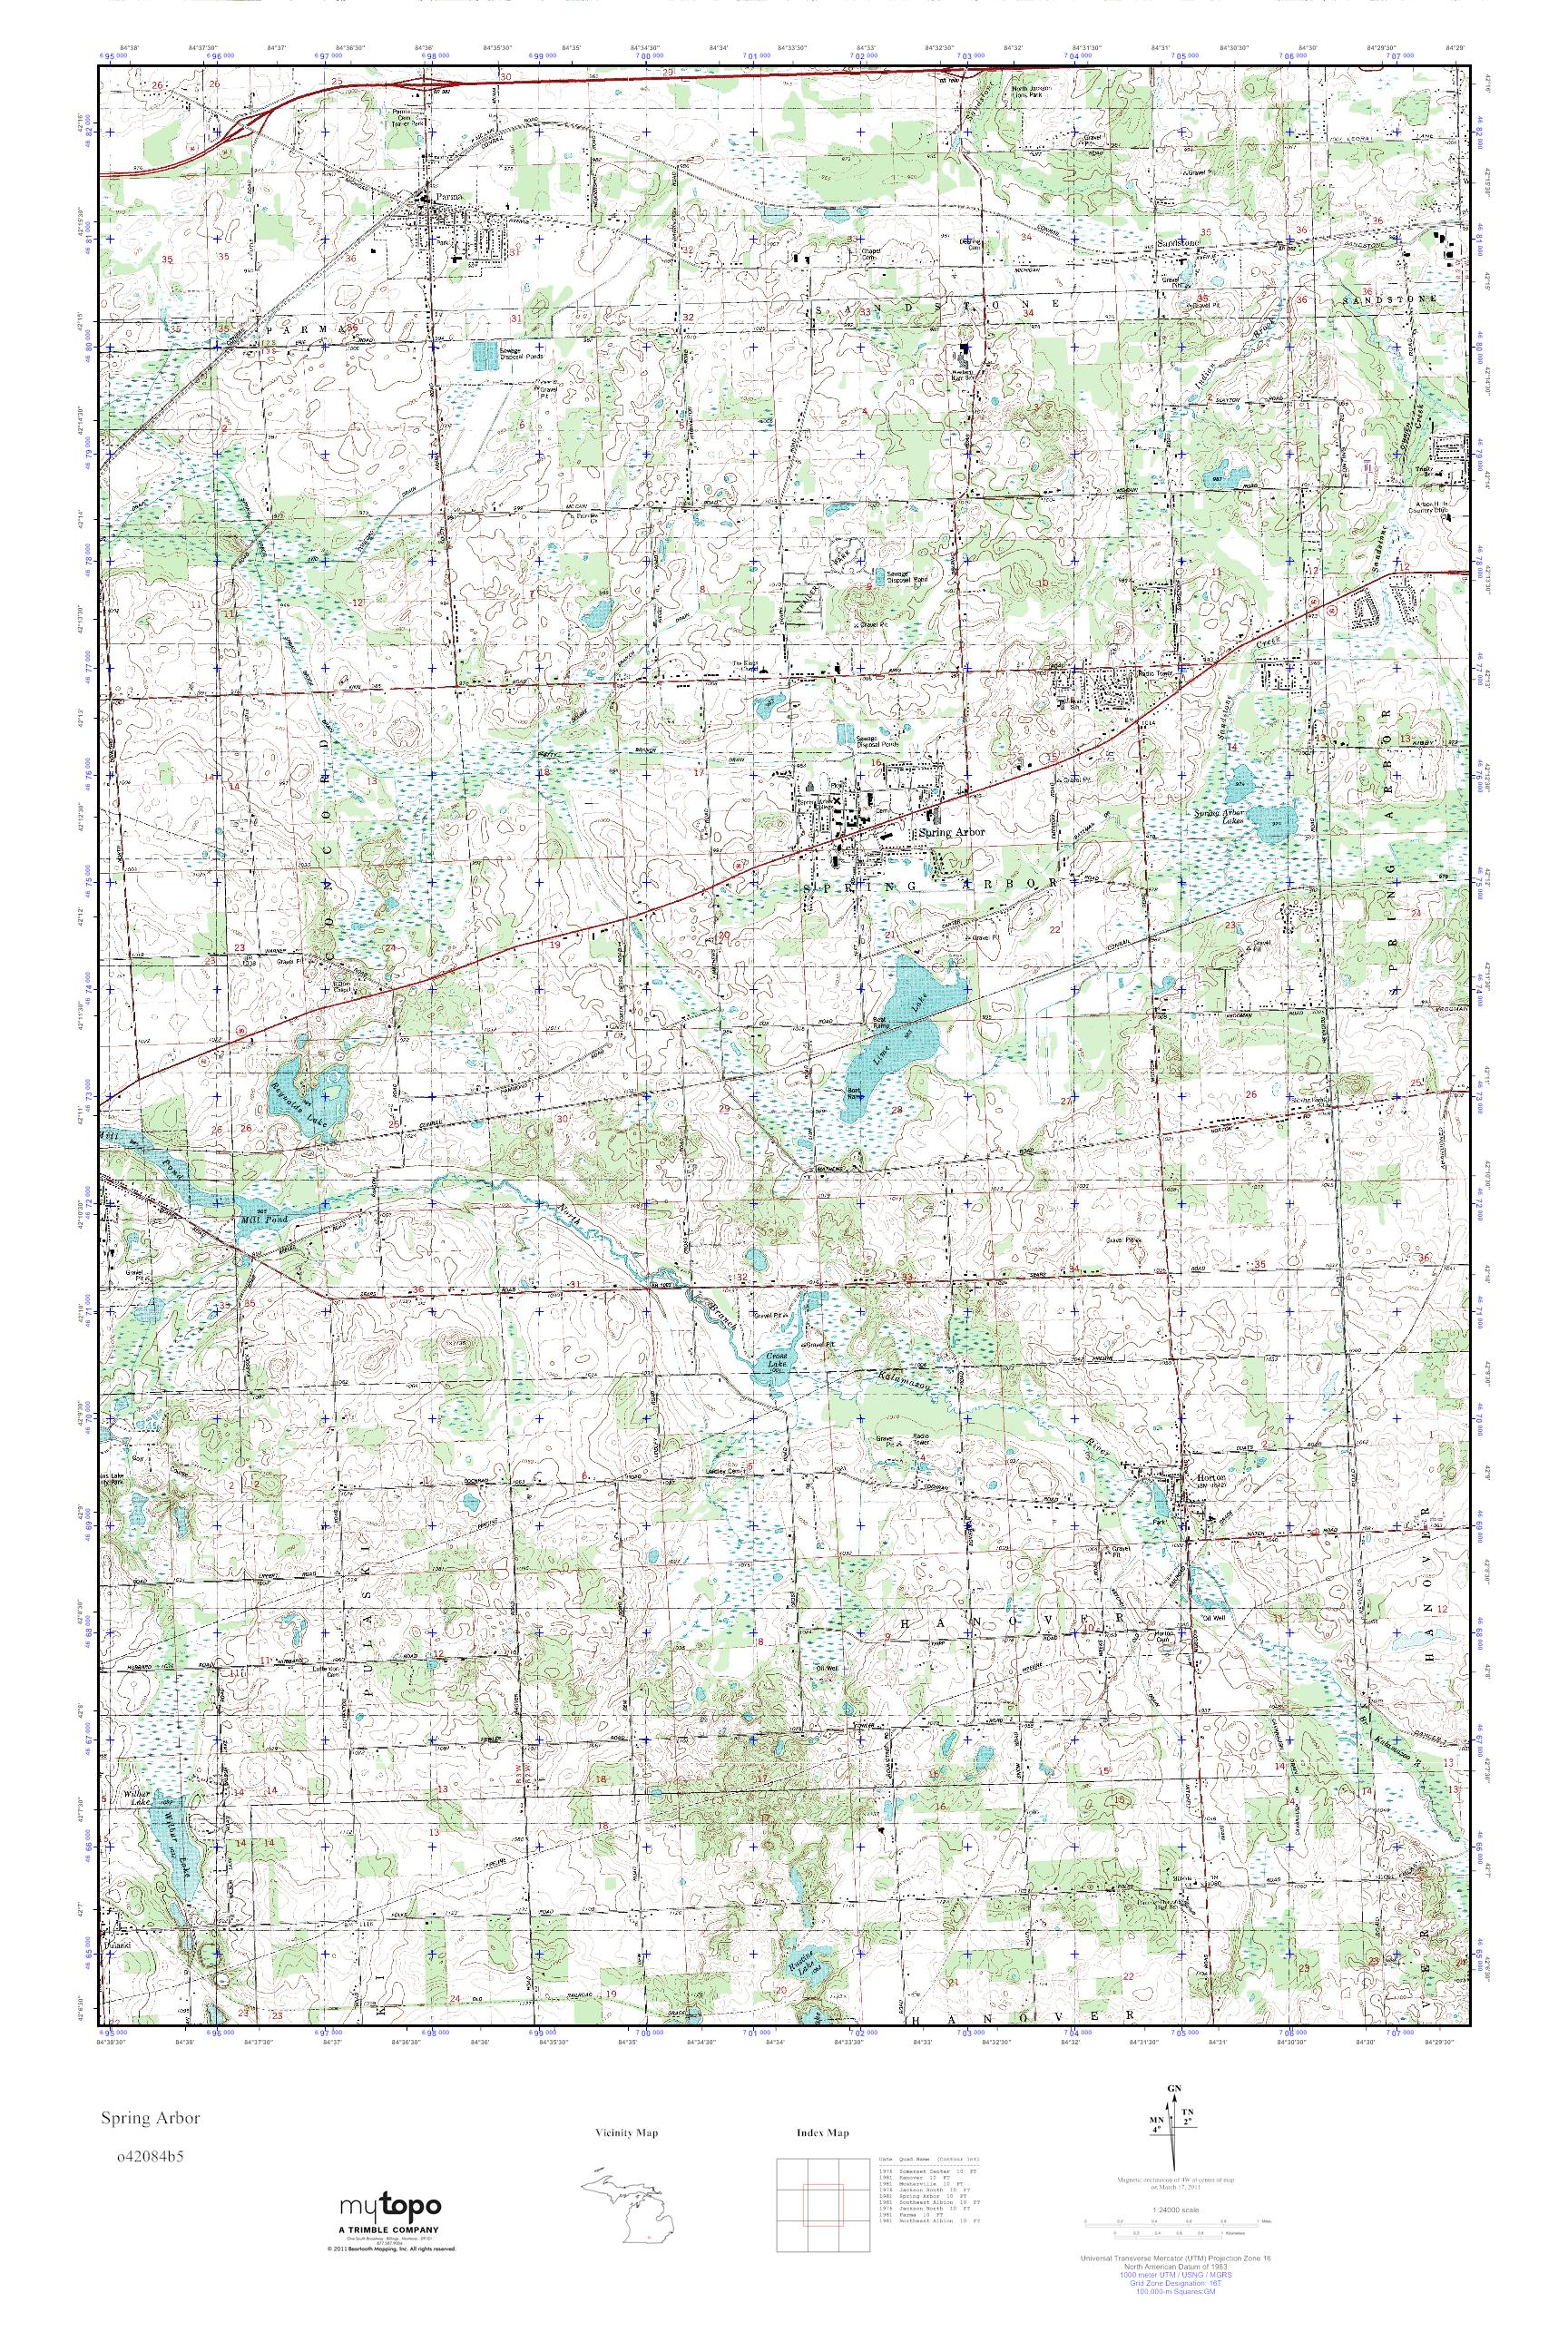 Spring Arbor Michigan Map.Mytopo Spring Arbor Michigan Usgs Quad Topo Map